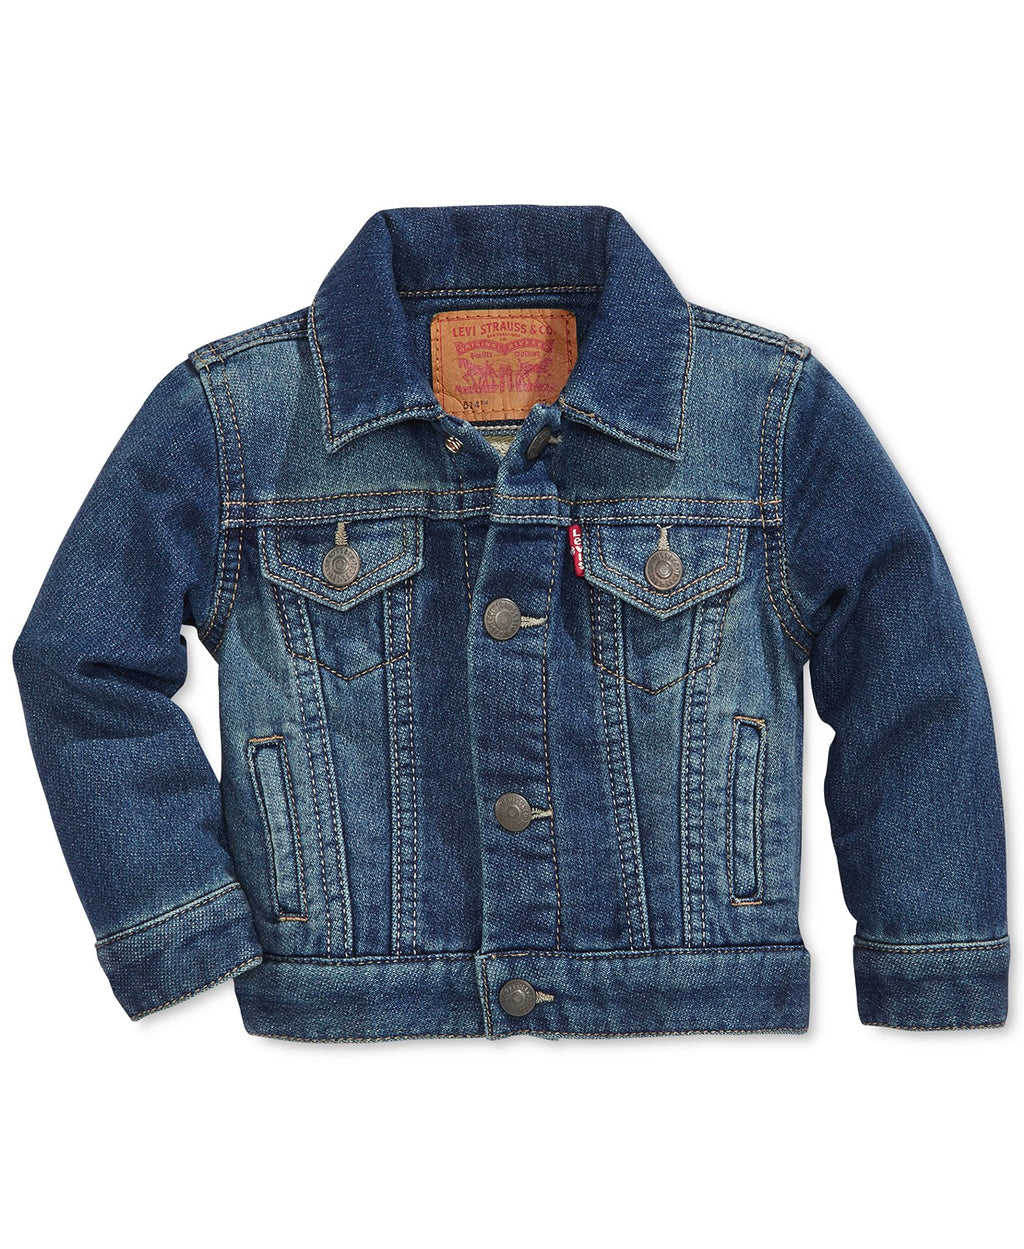 Baby Levi's Denim Trucker Jacket